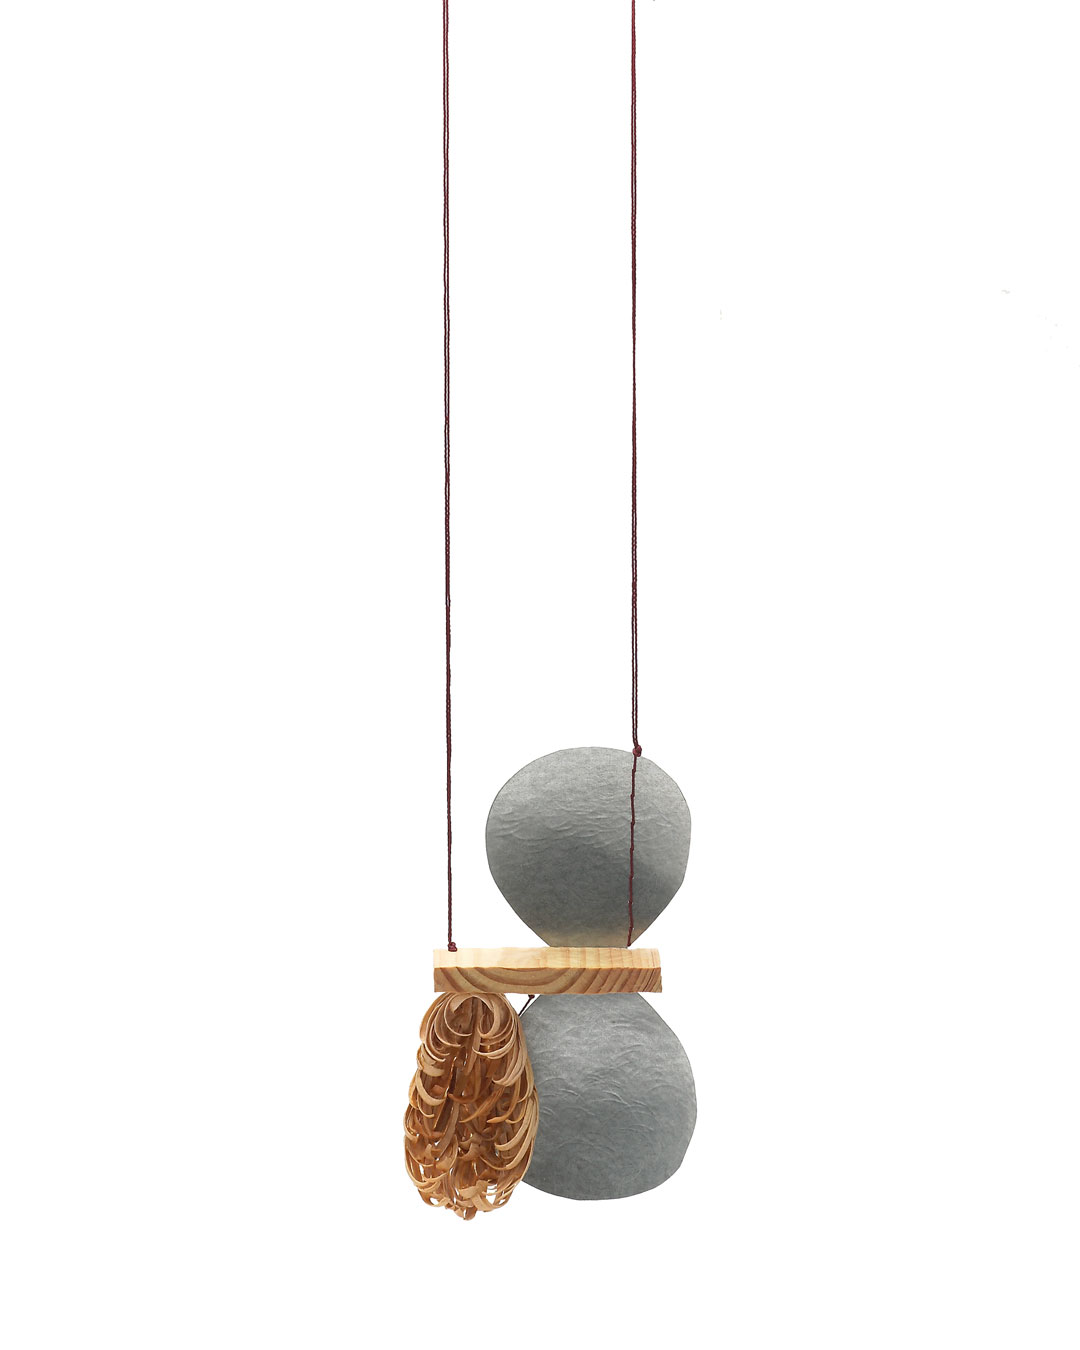 Dongchun Lee, Flourish Wither, 2014, necklace; wood, string, galvanised steel, nickel silver, 110 x 170 x 35 mm, €2060